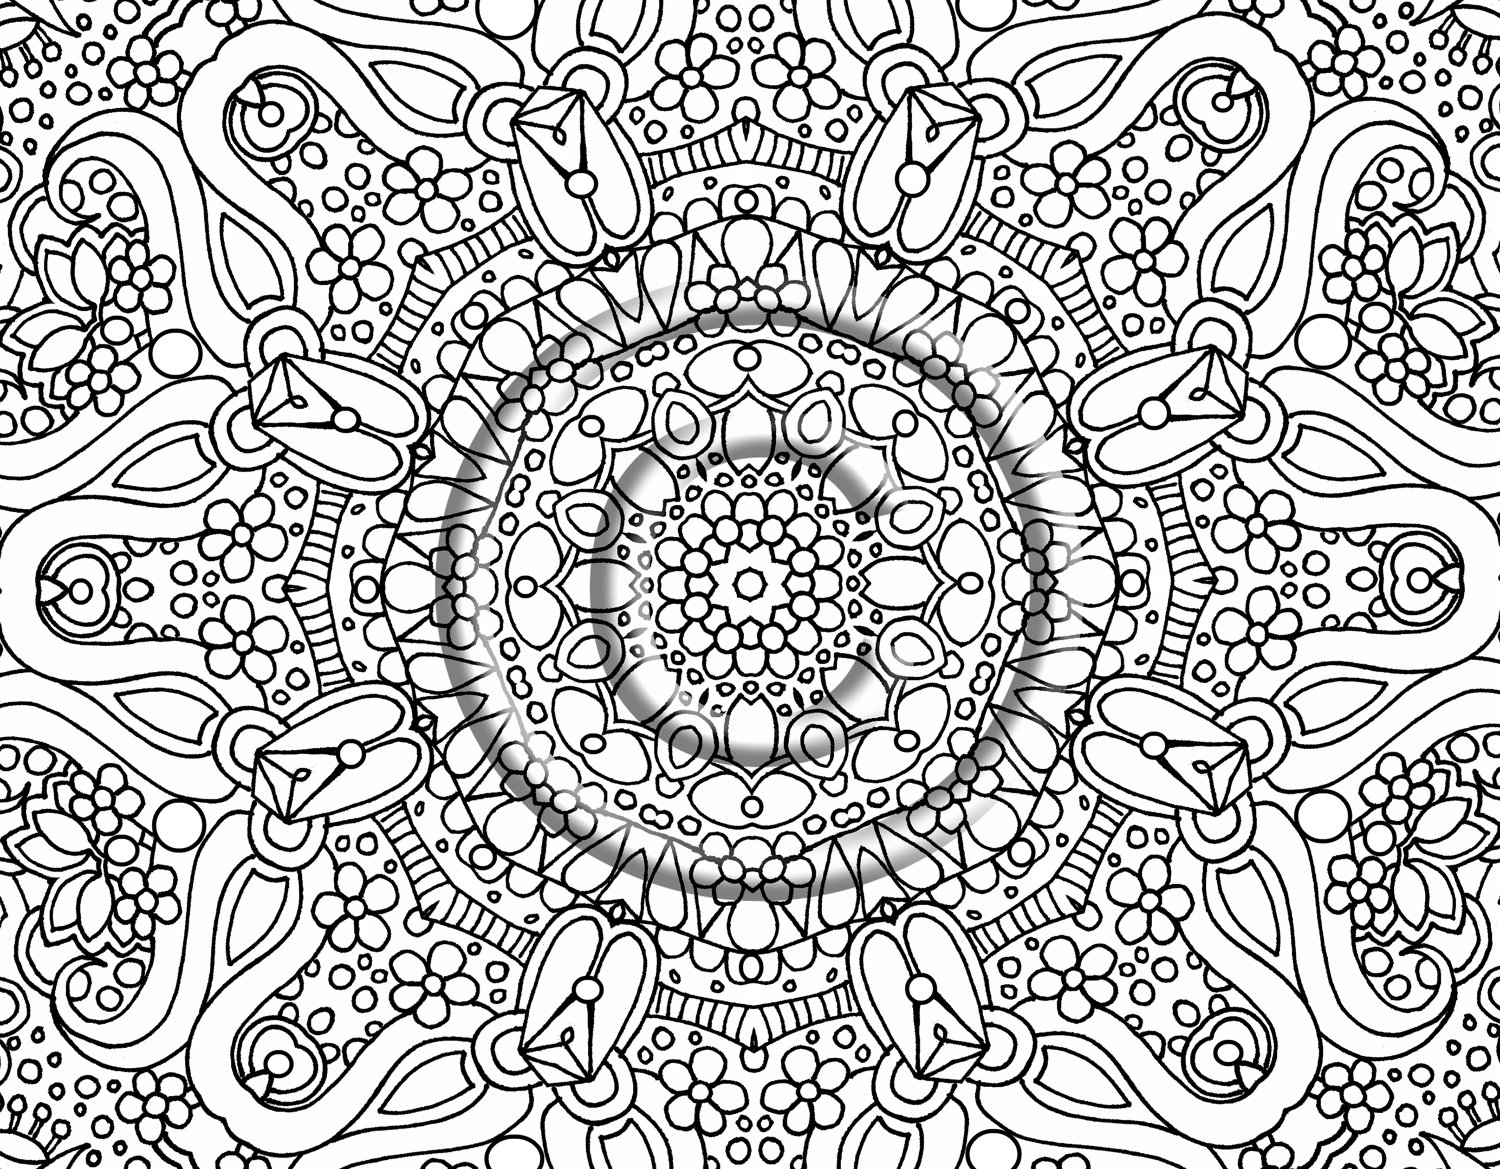 coloring pages for kids hard really hard detailed coloring pages coloring home pages hard coloring kids for